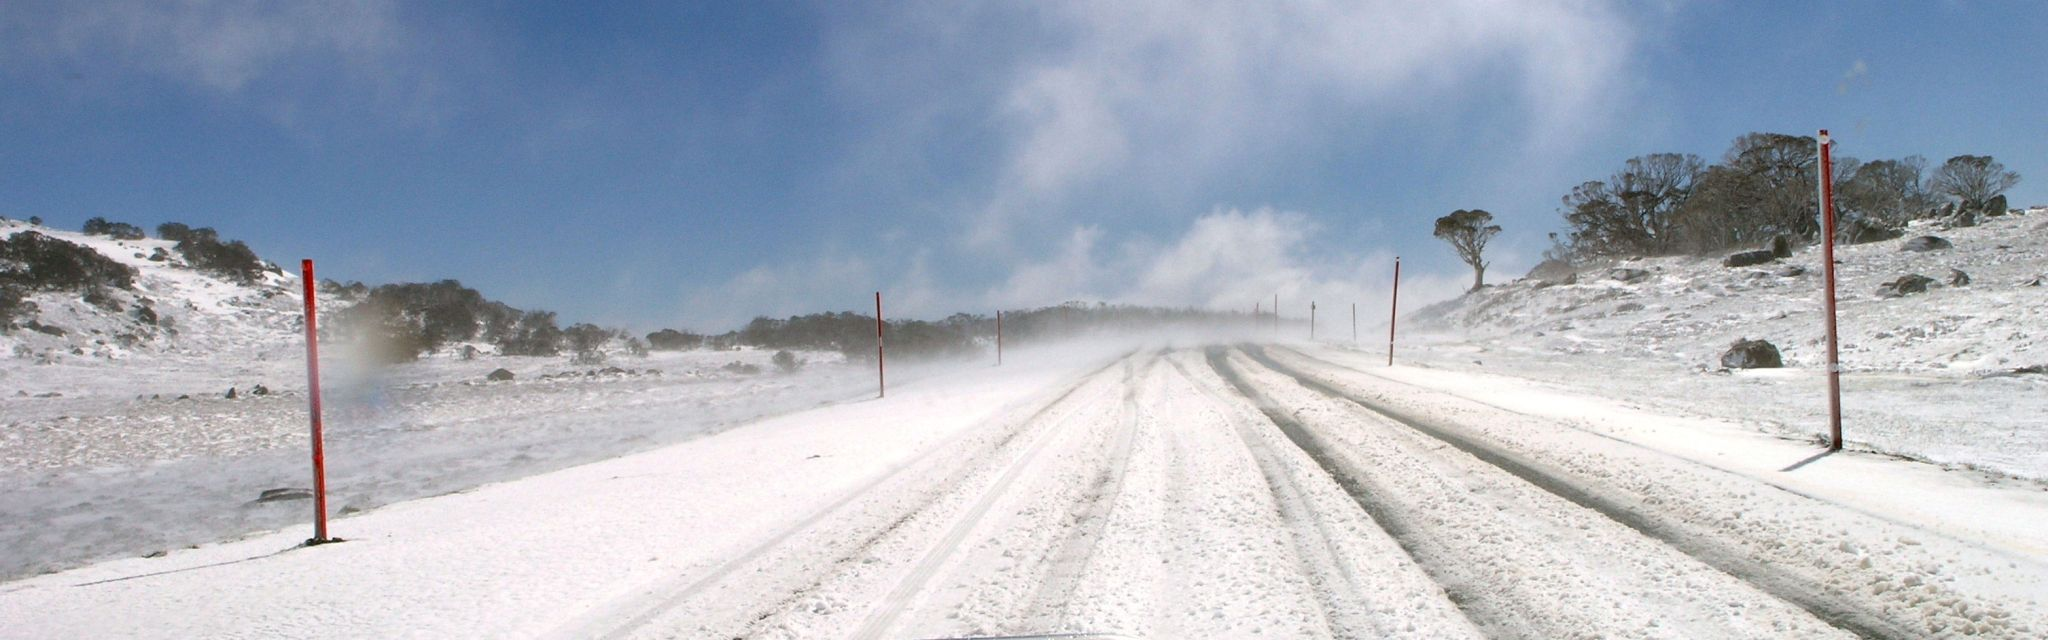 Snowing or non, we know the best time to holiday in Australia